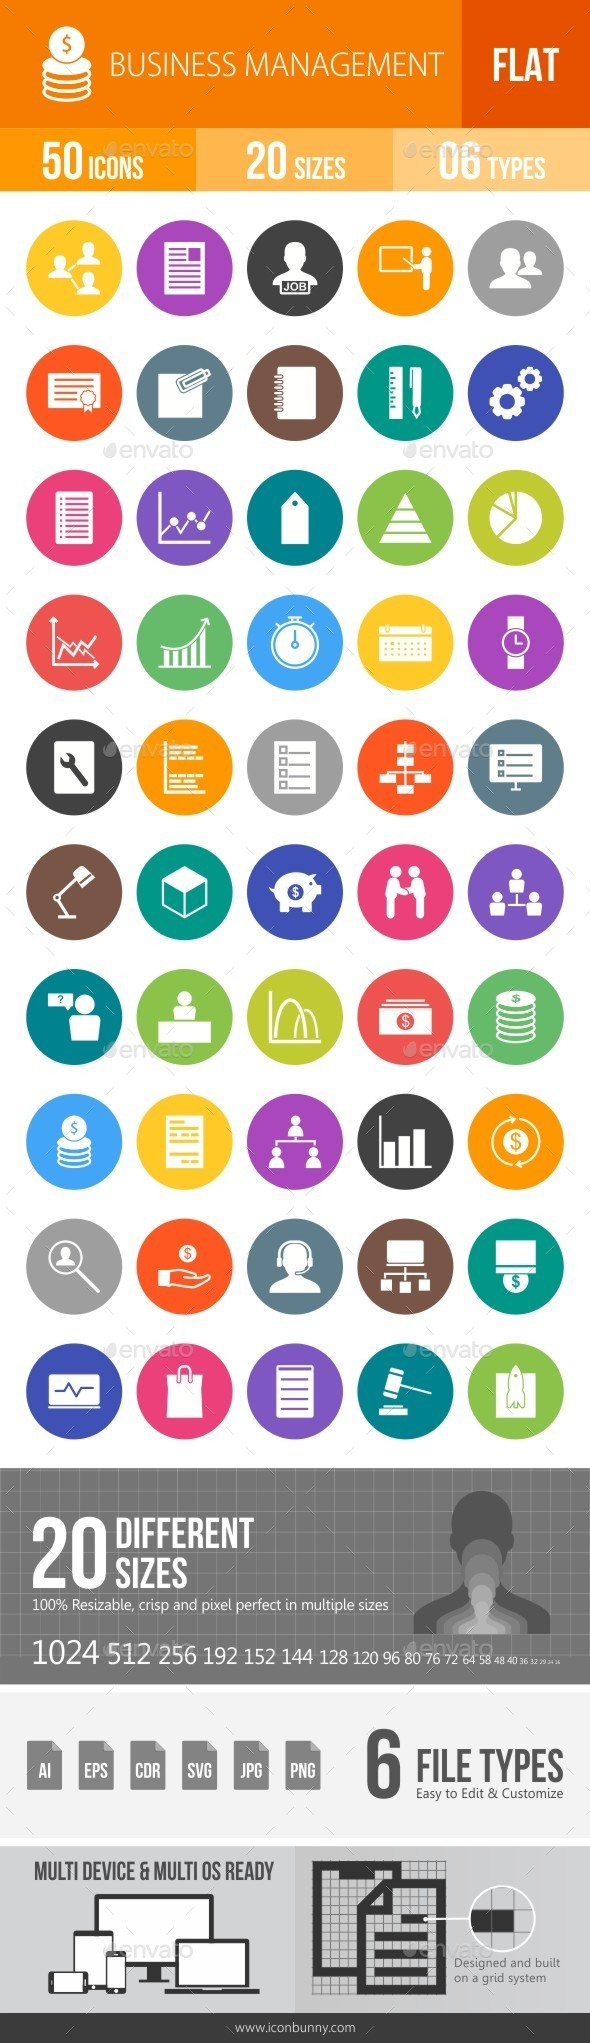 Business Management Flat Round Icons - Icons